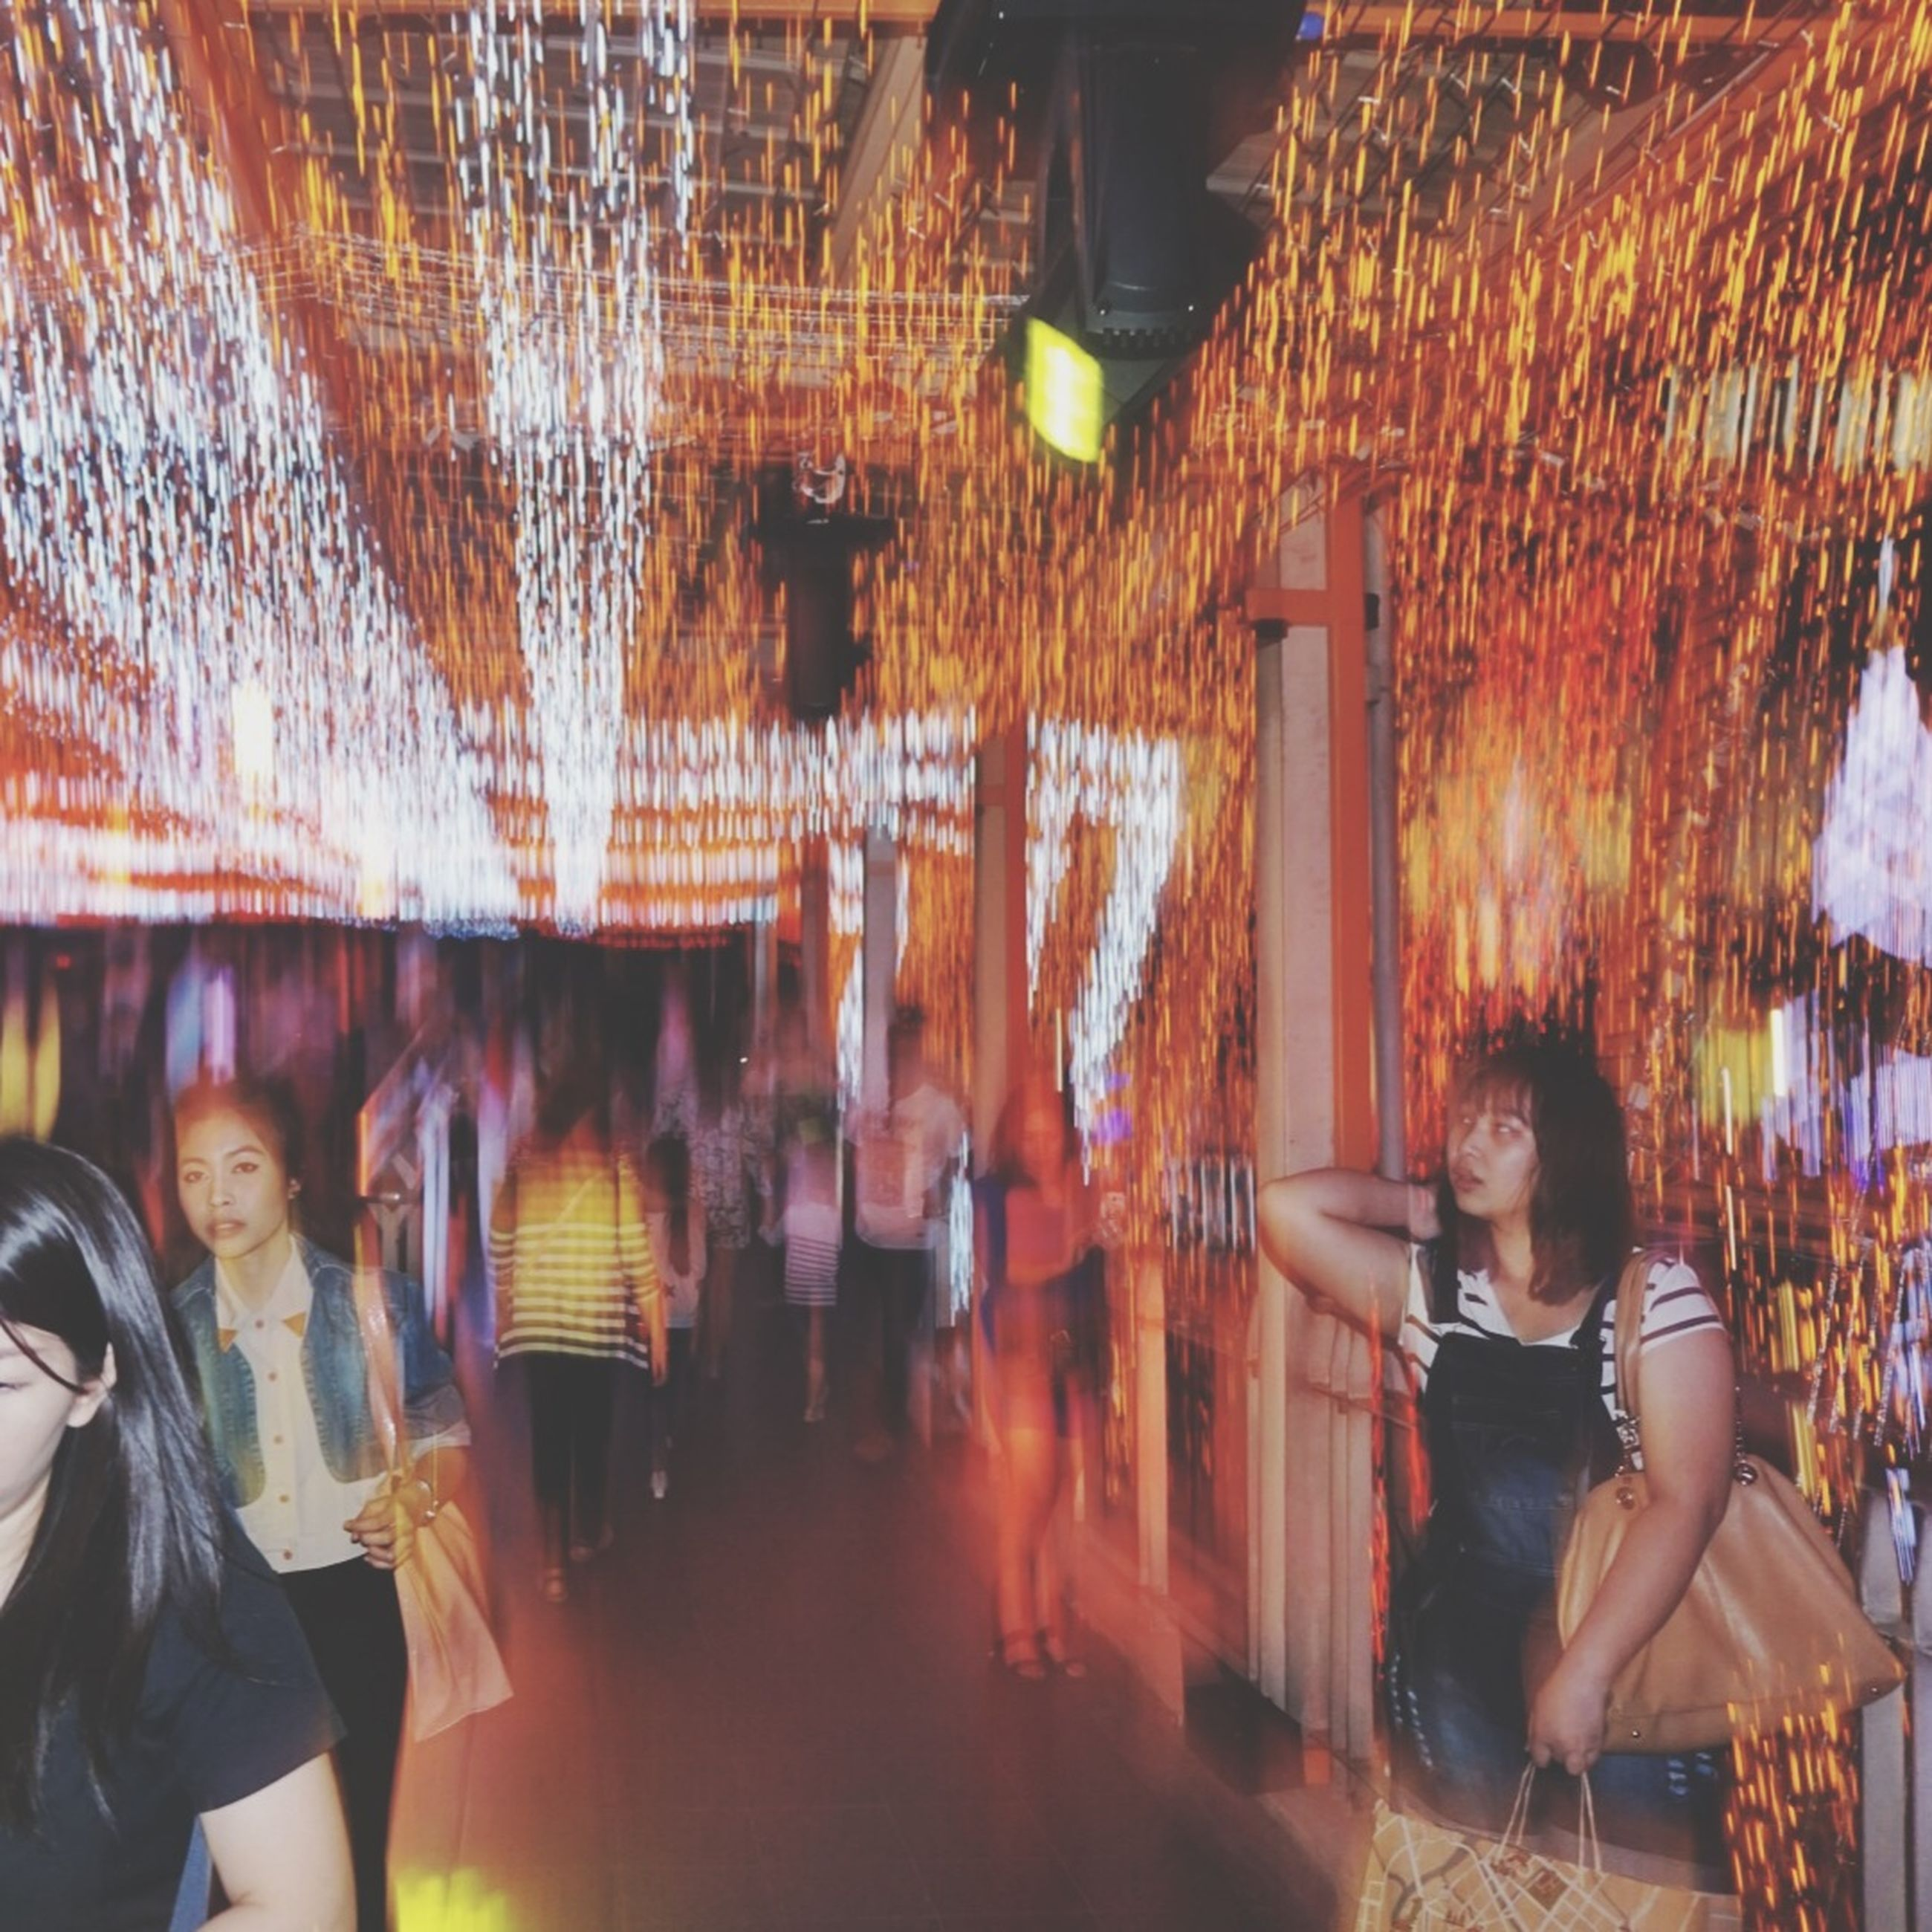 illuminated, indoors, lighting equipment, lifestyles, night, men, leisure activity, ceiling, person, lantern, standing, hanging, architecture, retail, casual clothing, built structure, rear view, large group of people